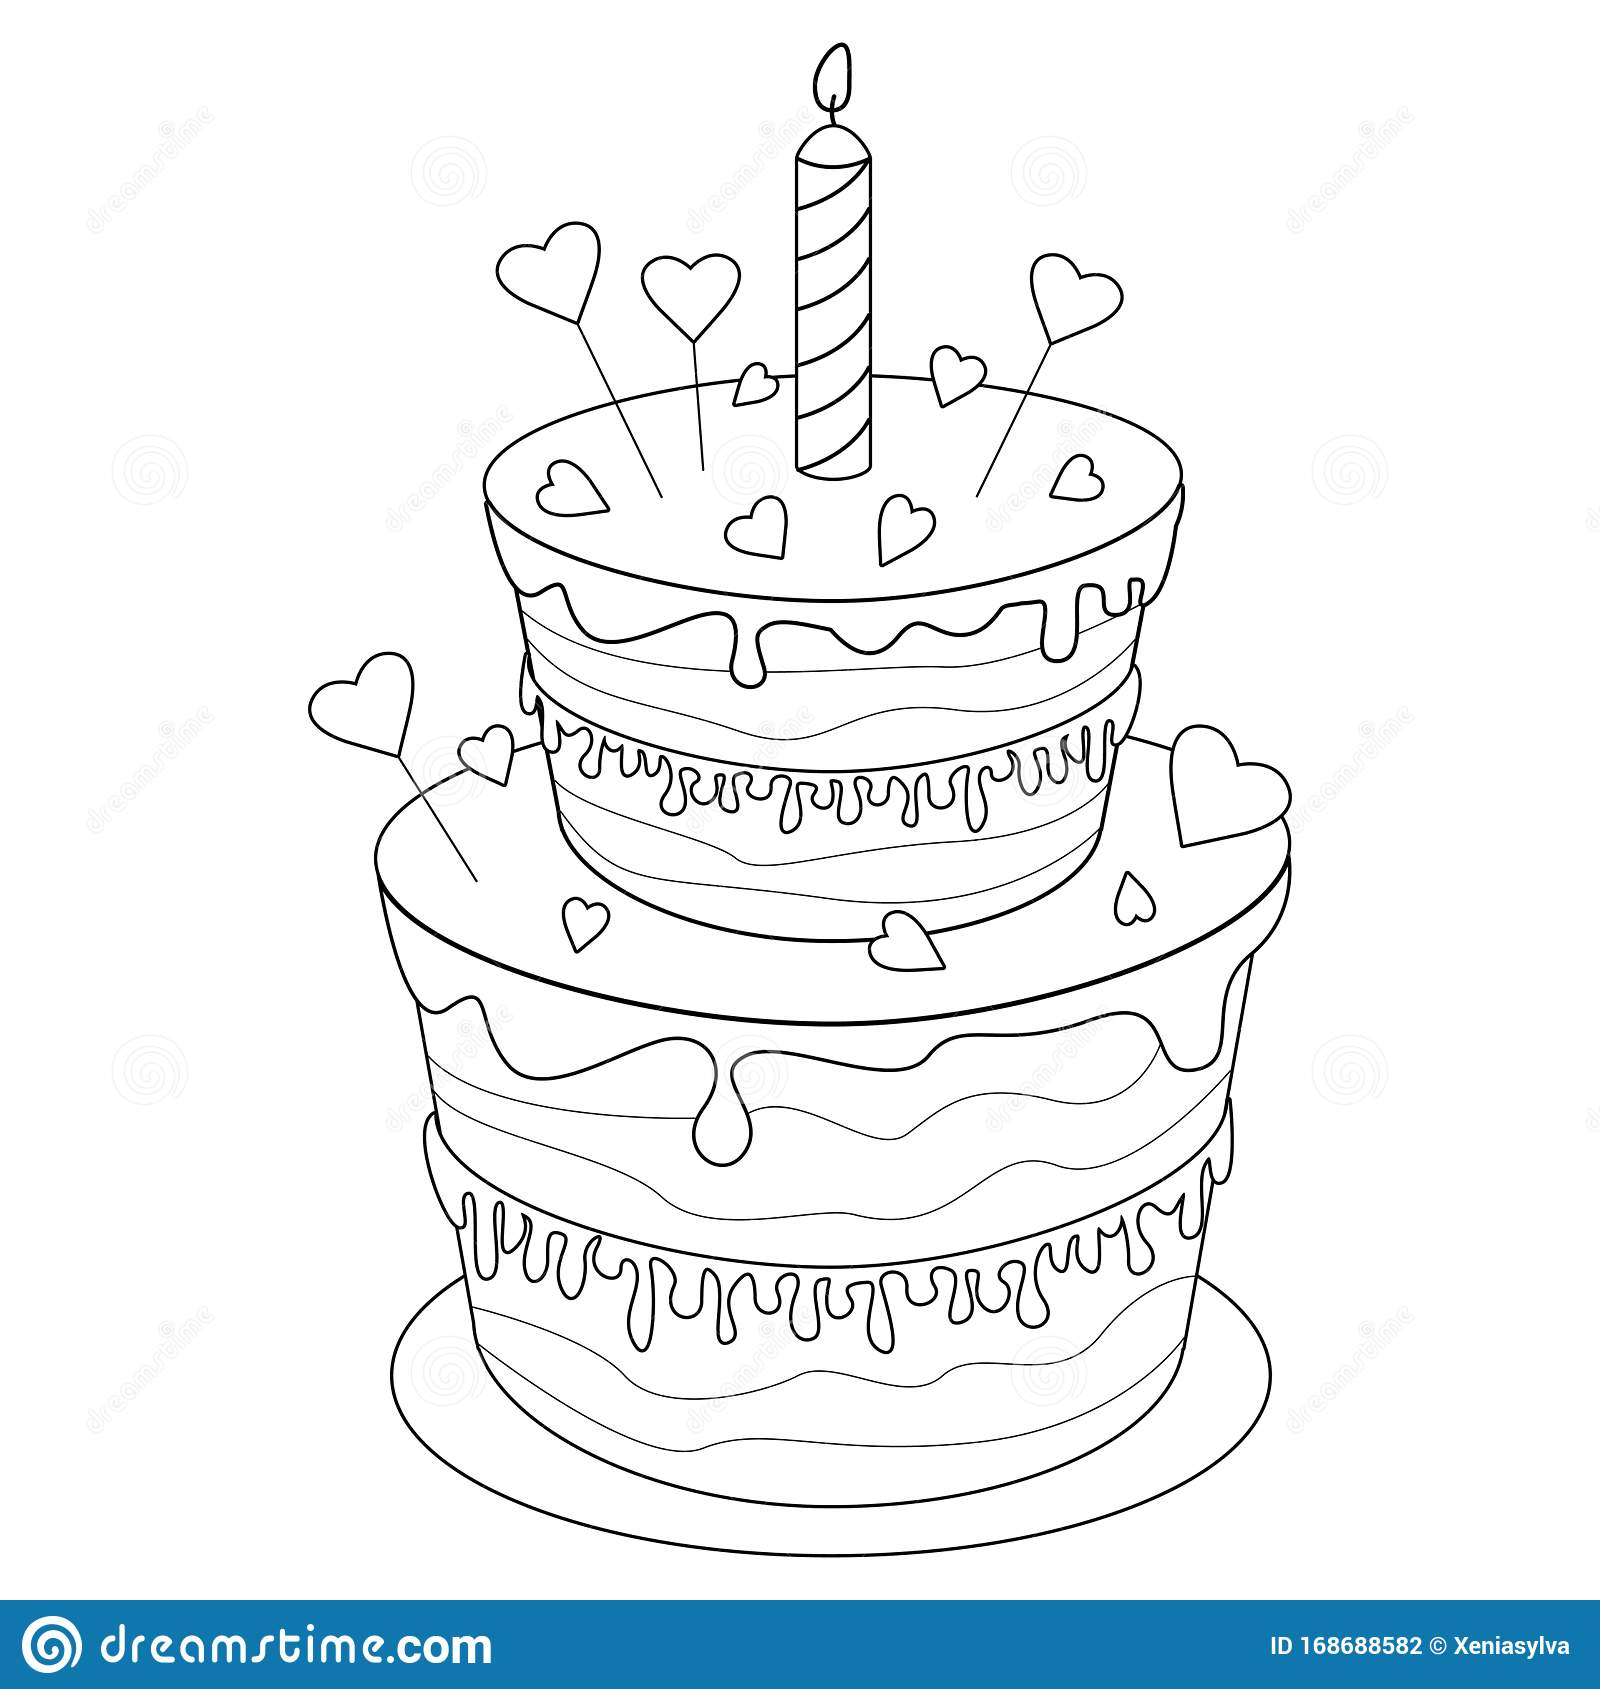 Stupendous Coloring Page Birthday Cake Stock Vector Illustration Of Funny Birthday Cards Online Alyptdamsfinfo